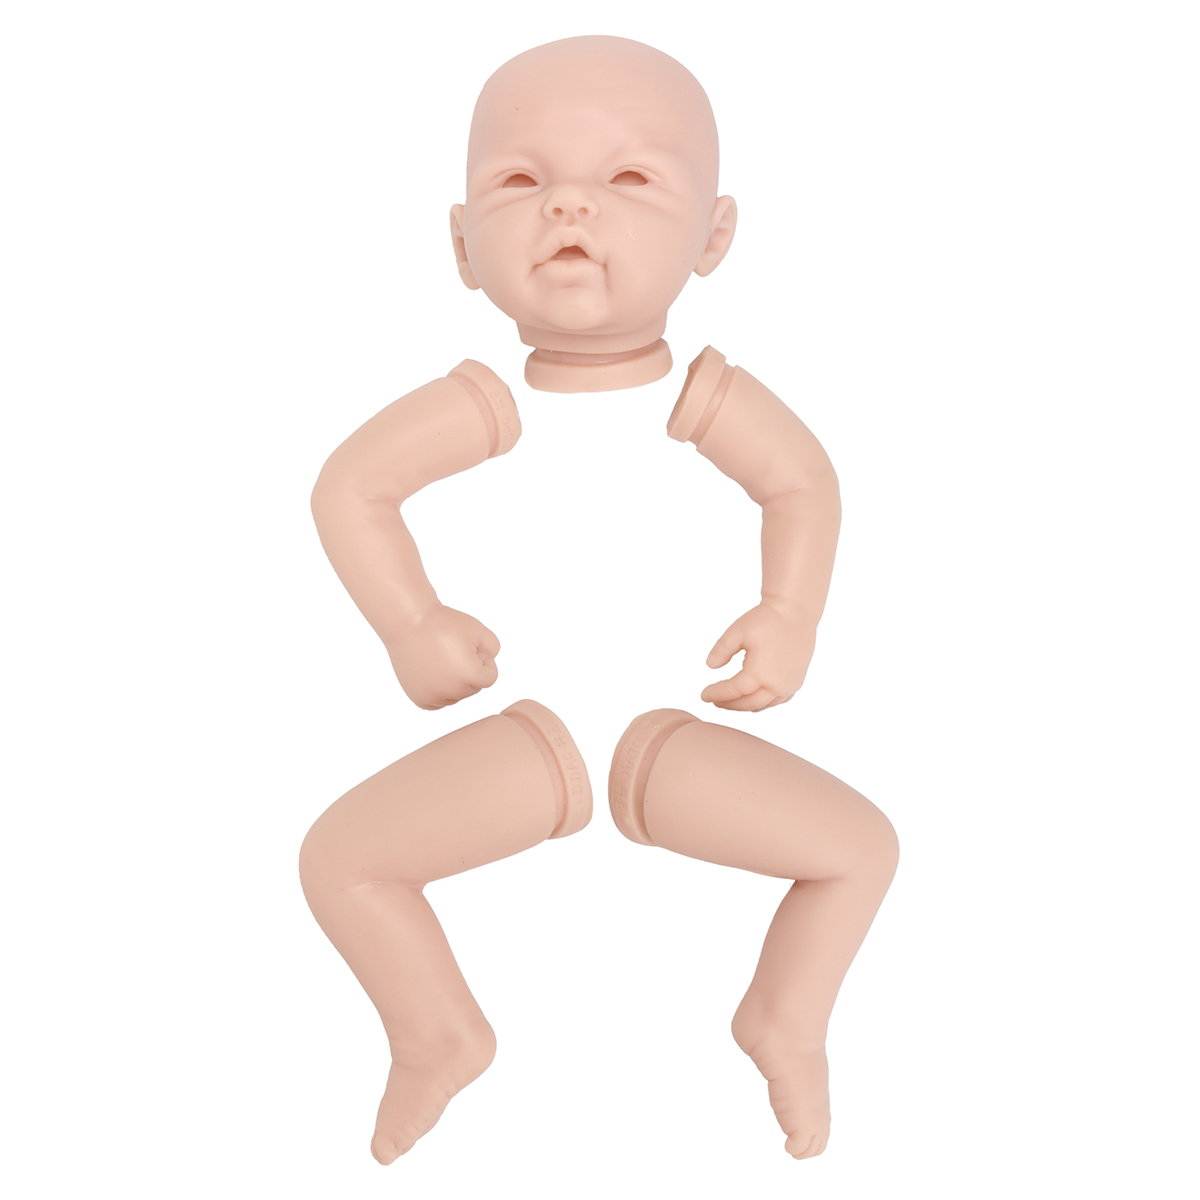 22 Inch Handmade DIY Reborn Kits Silicone Head Full Limb Mold Awake Baby Doll Unpainted Mold Making Different Appearance22 Inch Handmade DIY Reborn Kits Silicone Head Full Limb Mold Awake Baby Doll Unpainted Mold Making Different Appearance